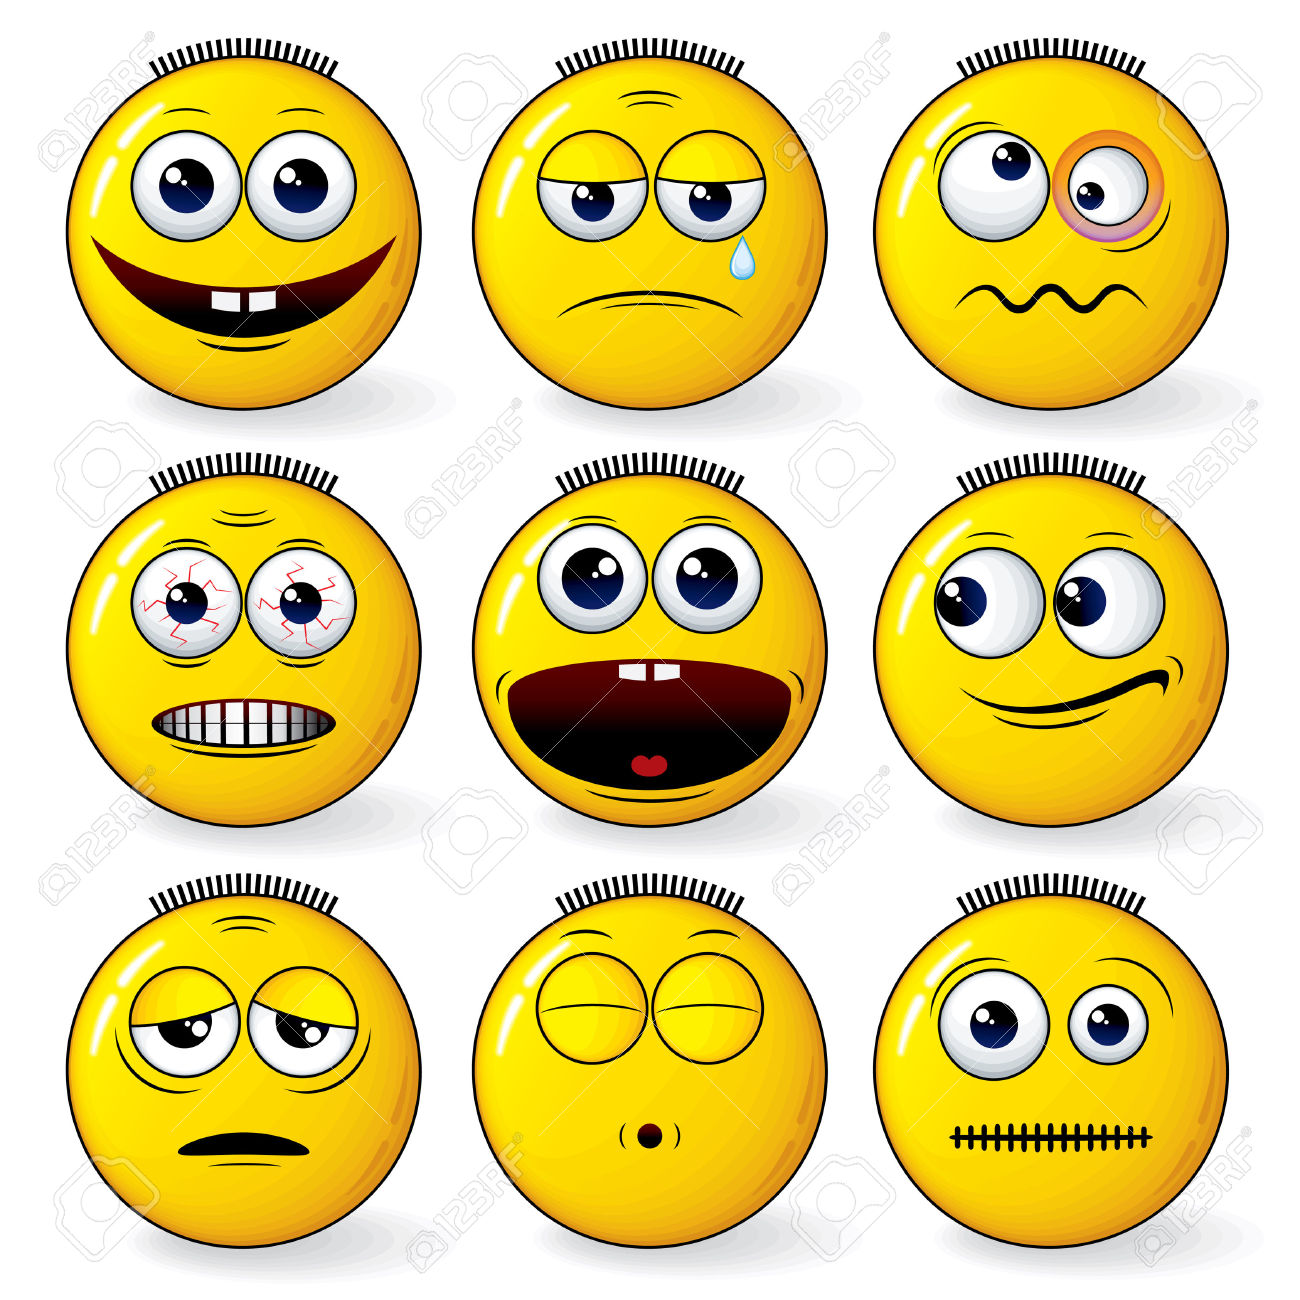 Animated feelings clipart.